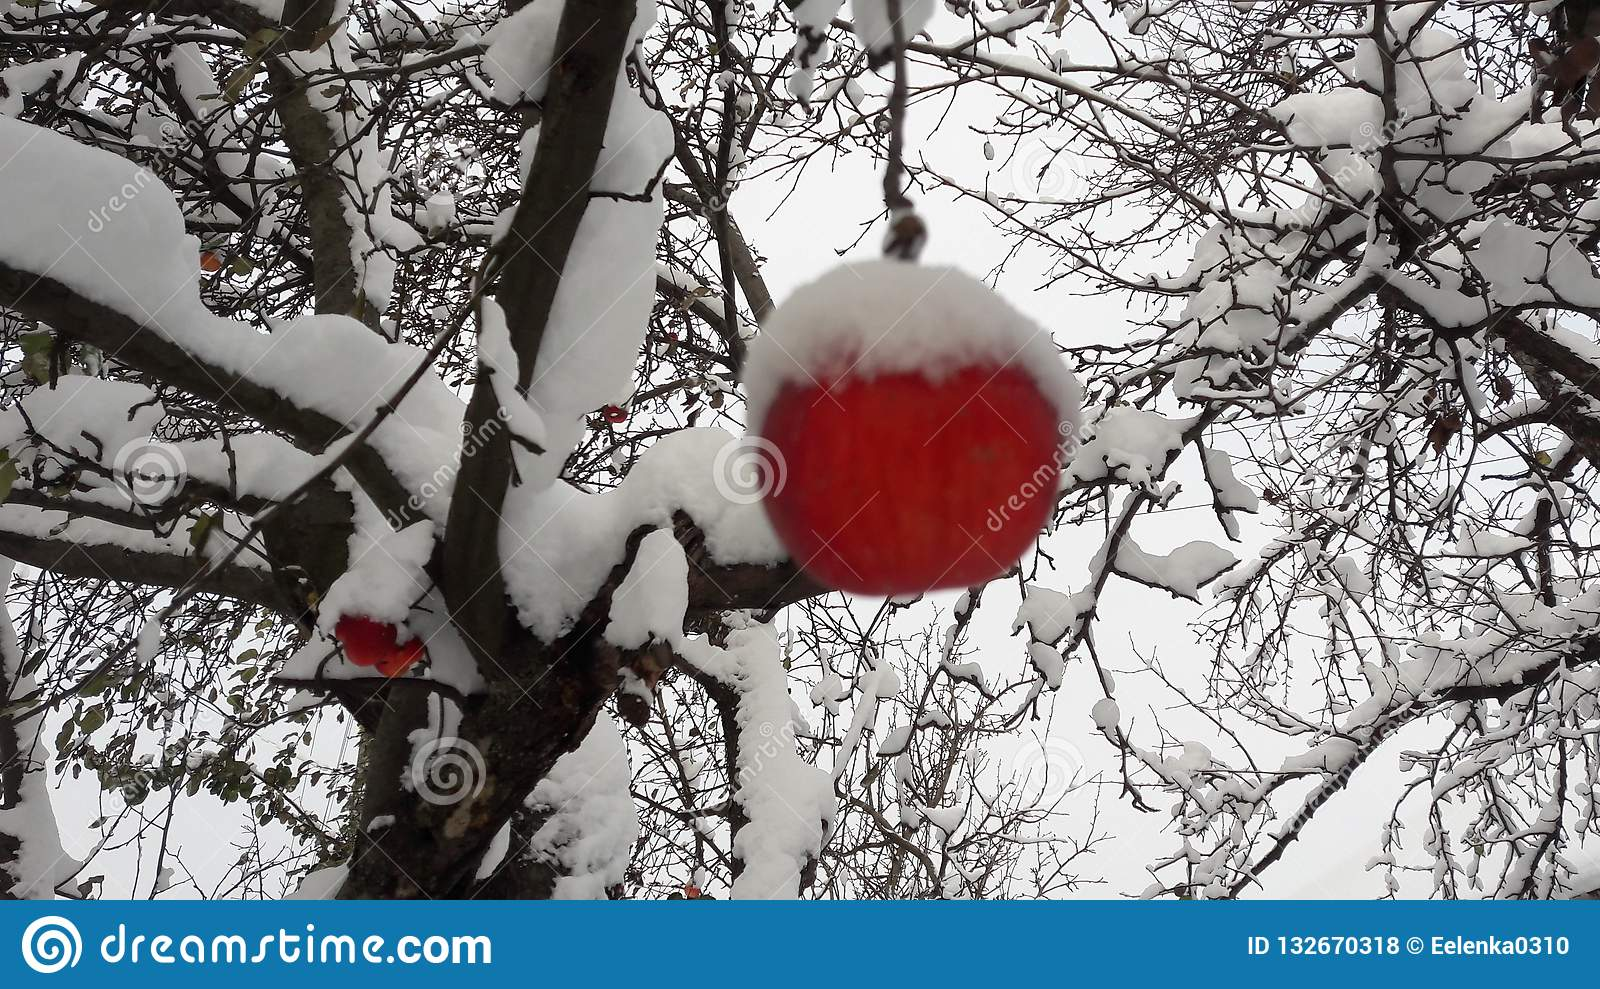 Red apples in the garden on a tree covered with snow against. Apple in winter with snow